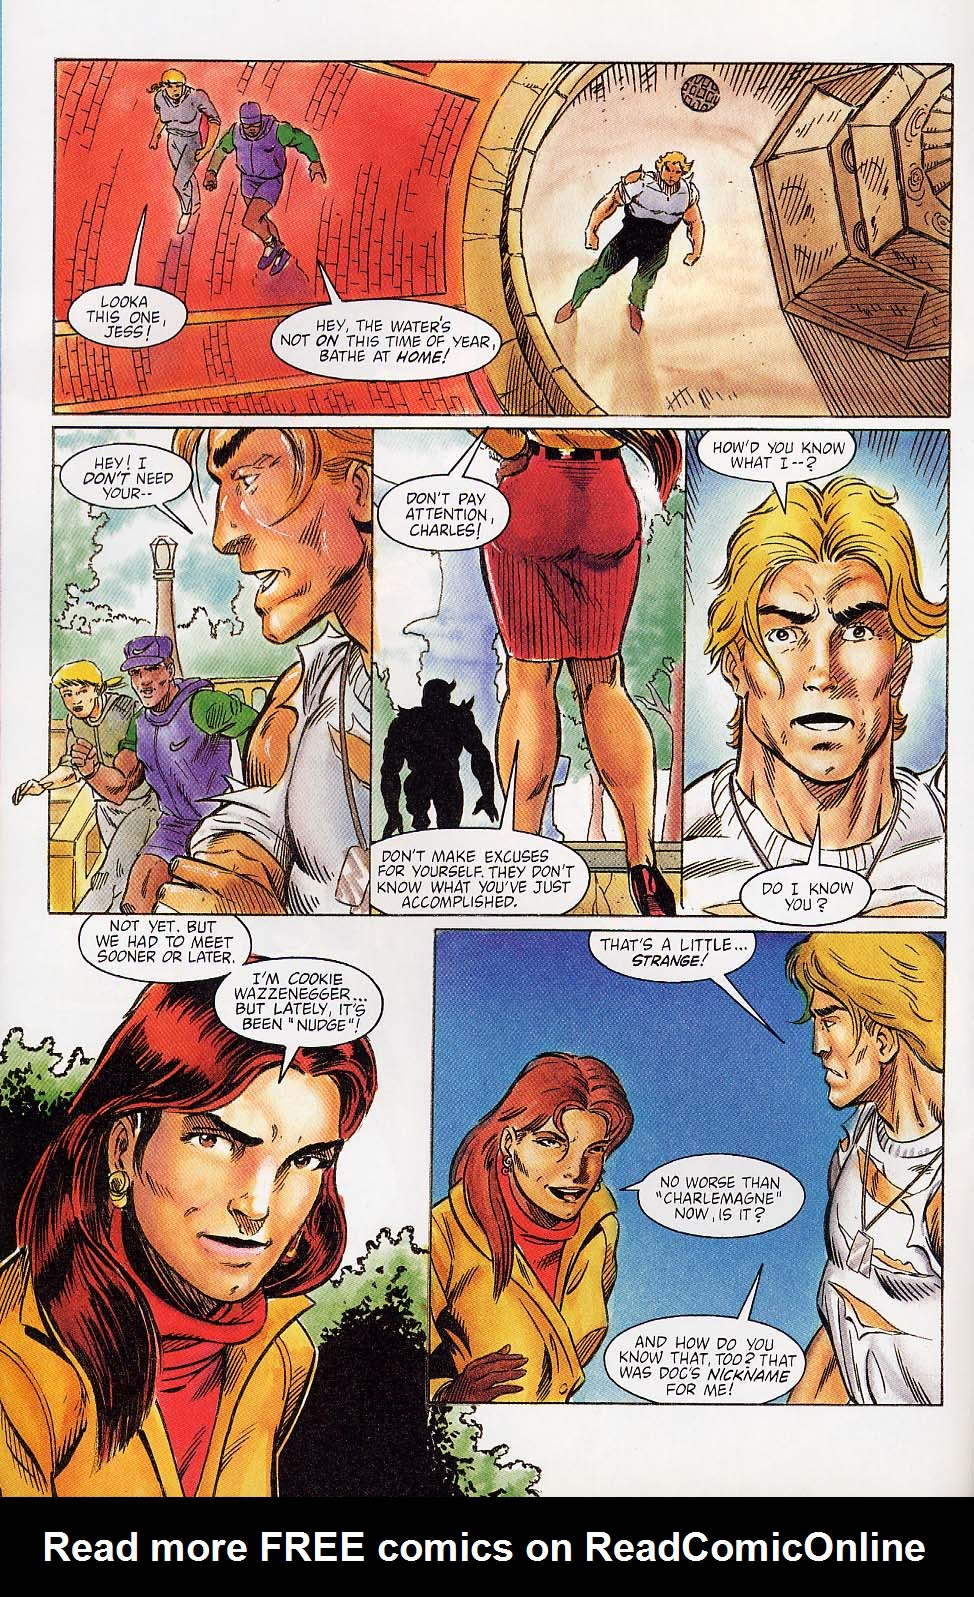 Read online Charlemagne comic -  Issue #4 - 3